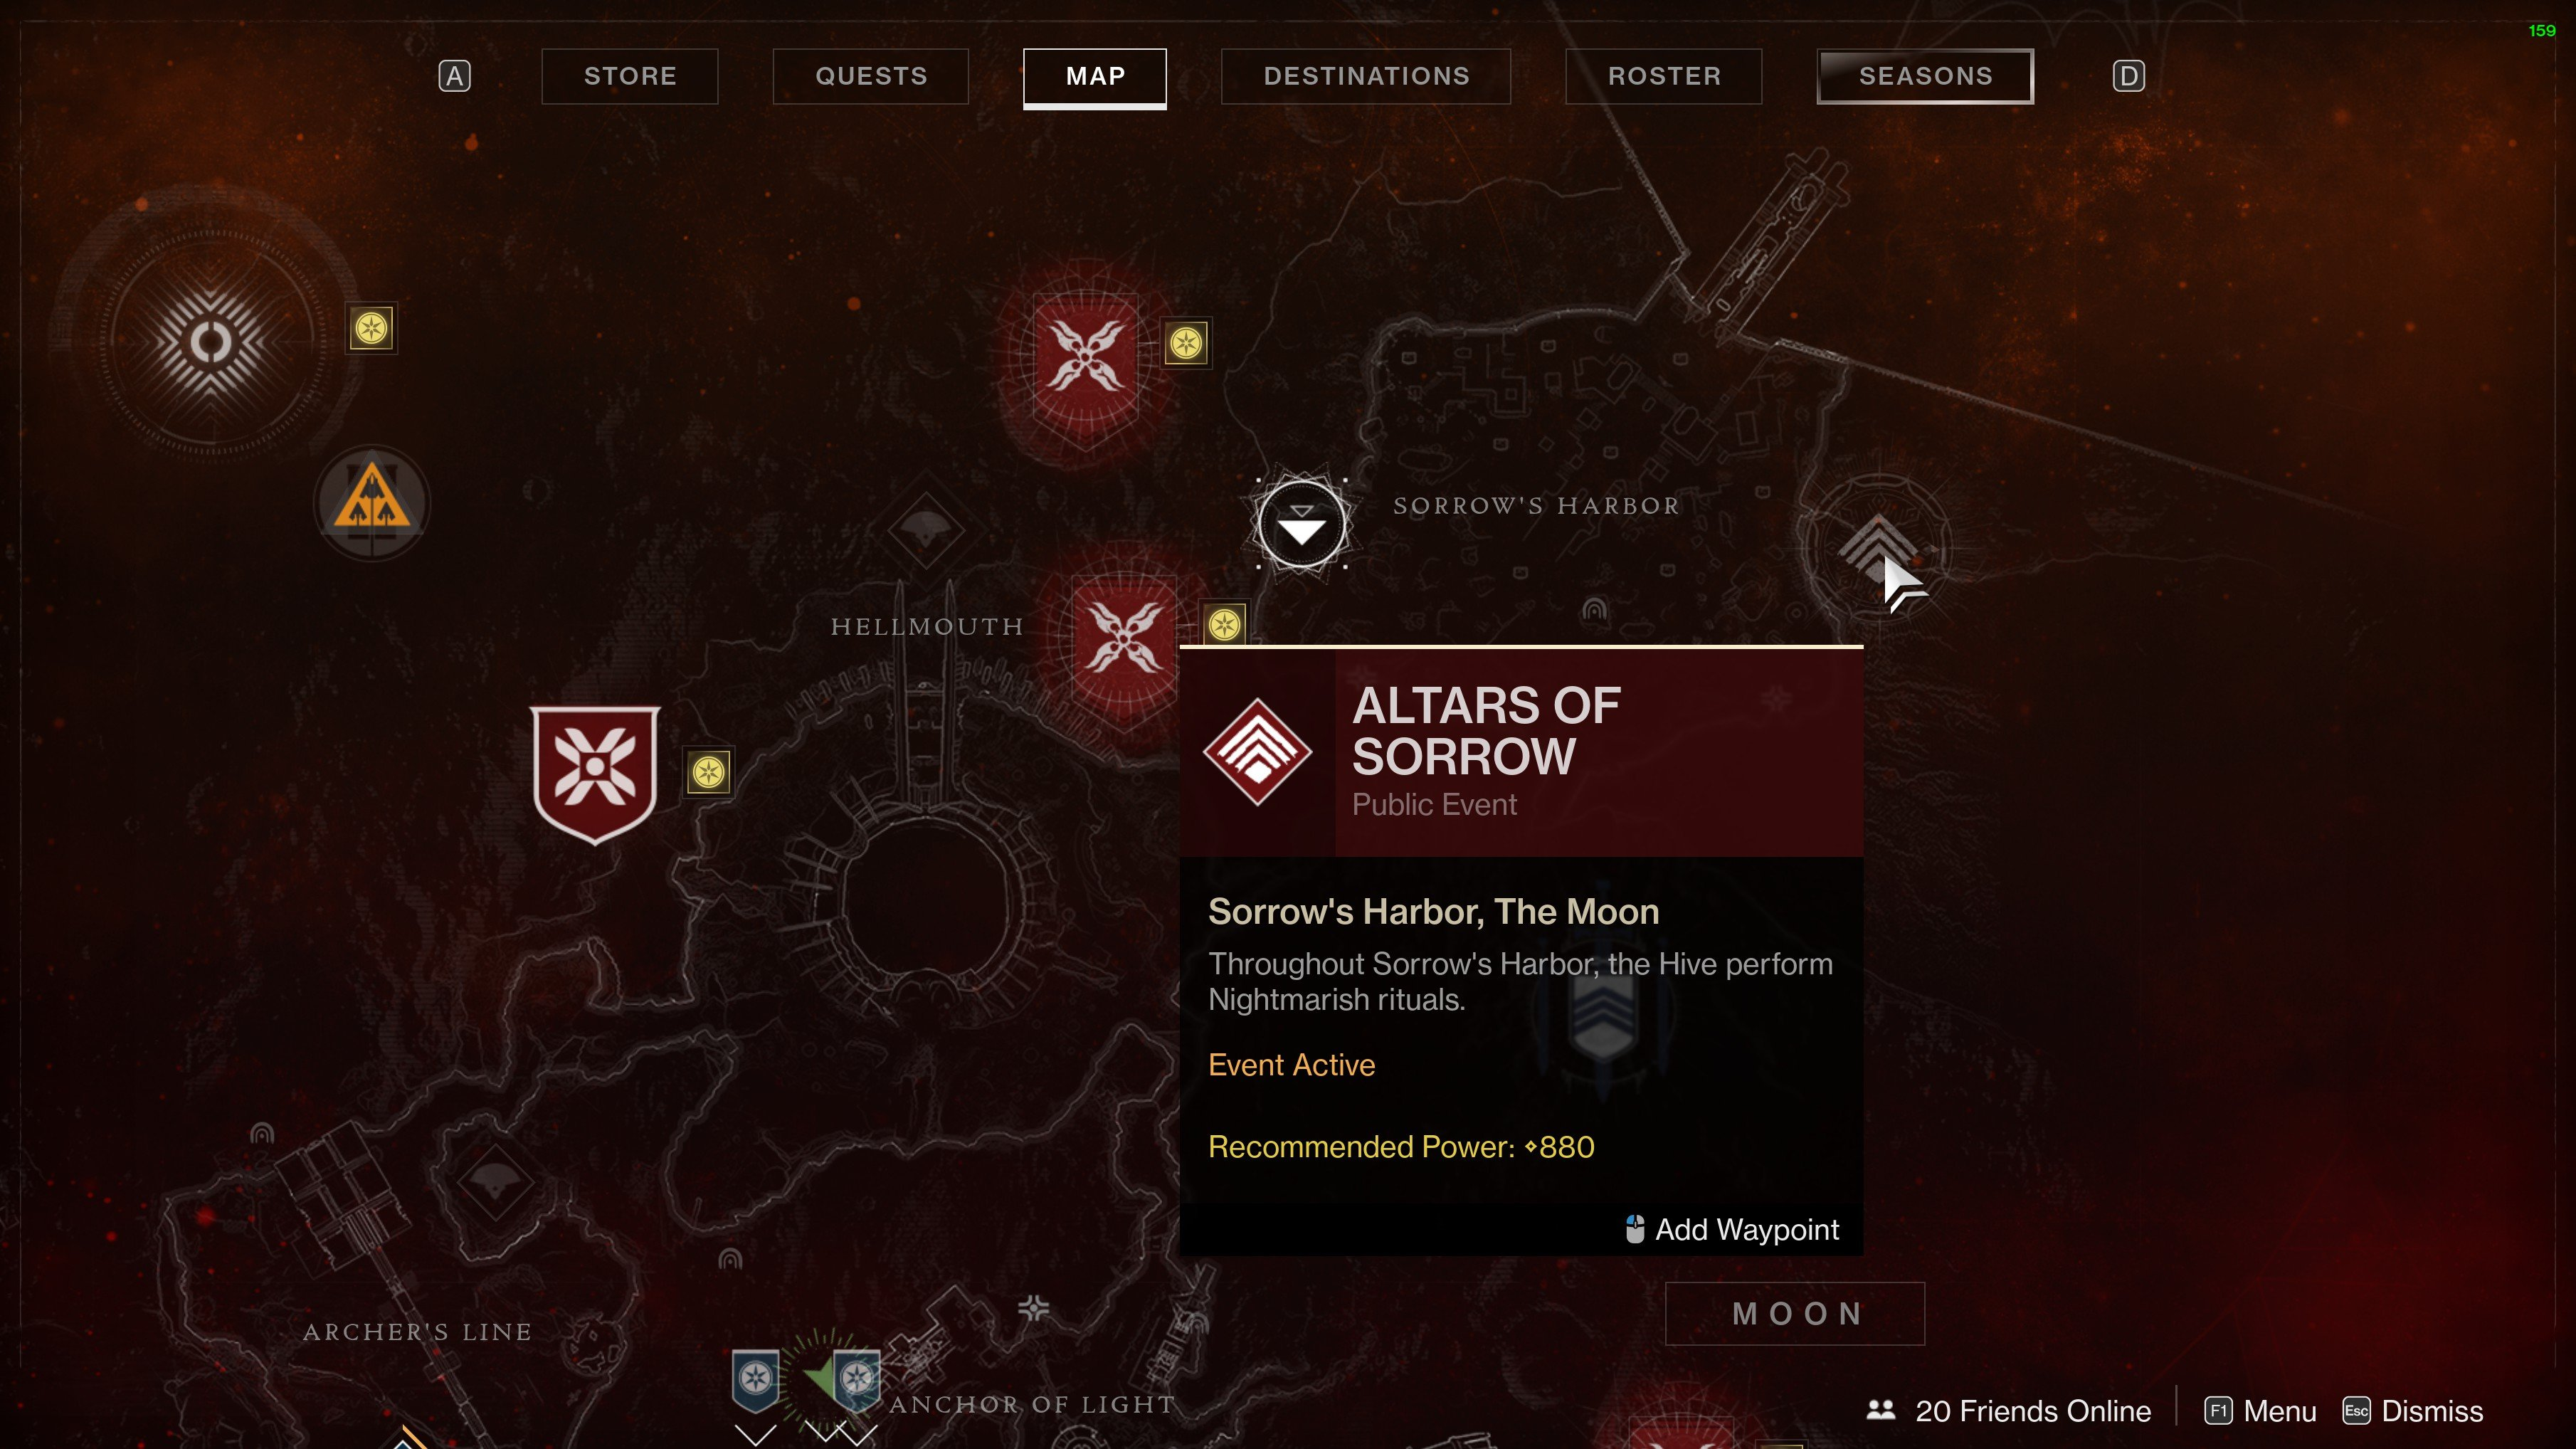 Where to find the Pit of Heresy dungeon in Destiny 2 Shadowkeep: First complete this public event.